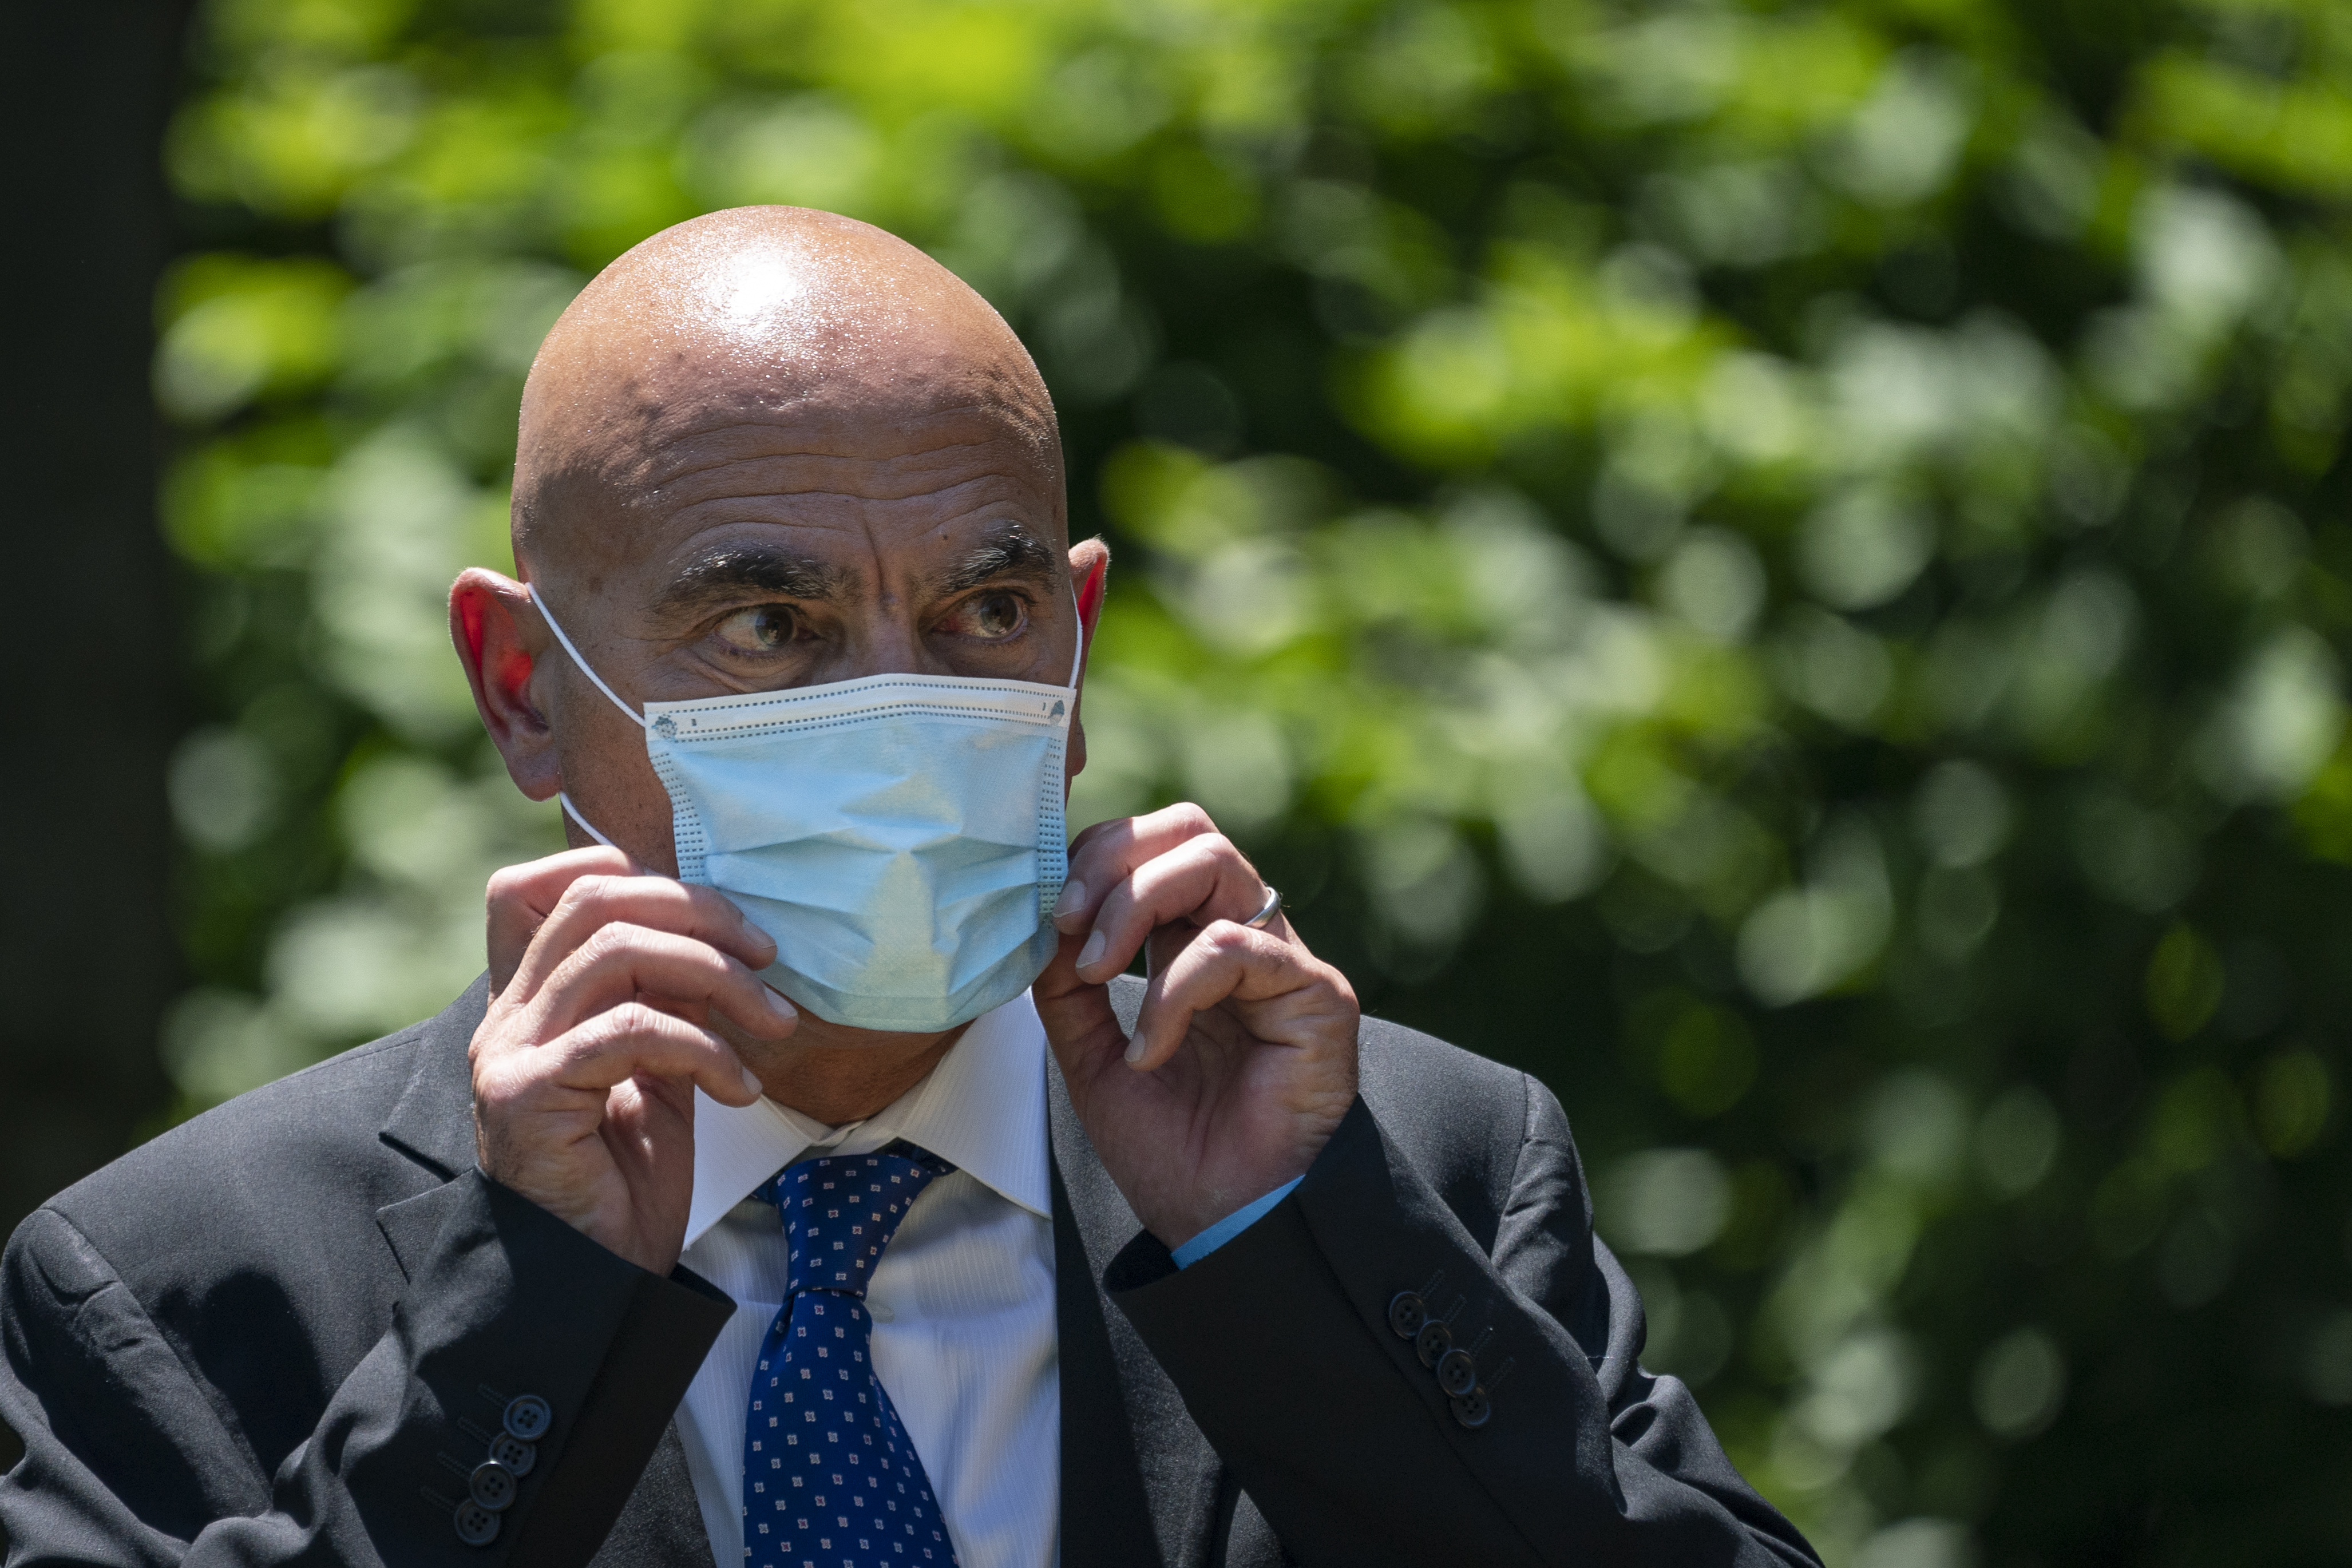 Moncef Slaoui, head of the White House's  Operation Warp Speed  project to develop a coronavirus vaccine, listens to U.S. President Donald Trump deliversremarks about vaccine development in the Rose Garden of the White House on May 15, 2020 in Washington, DC.